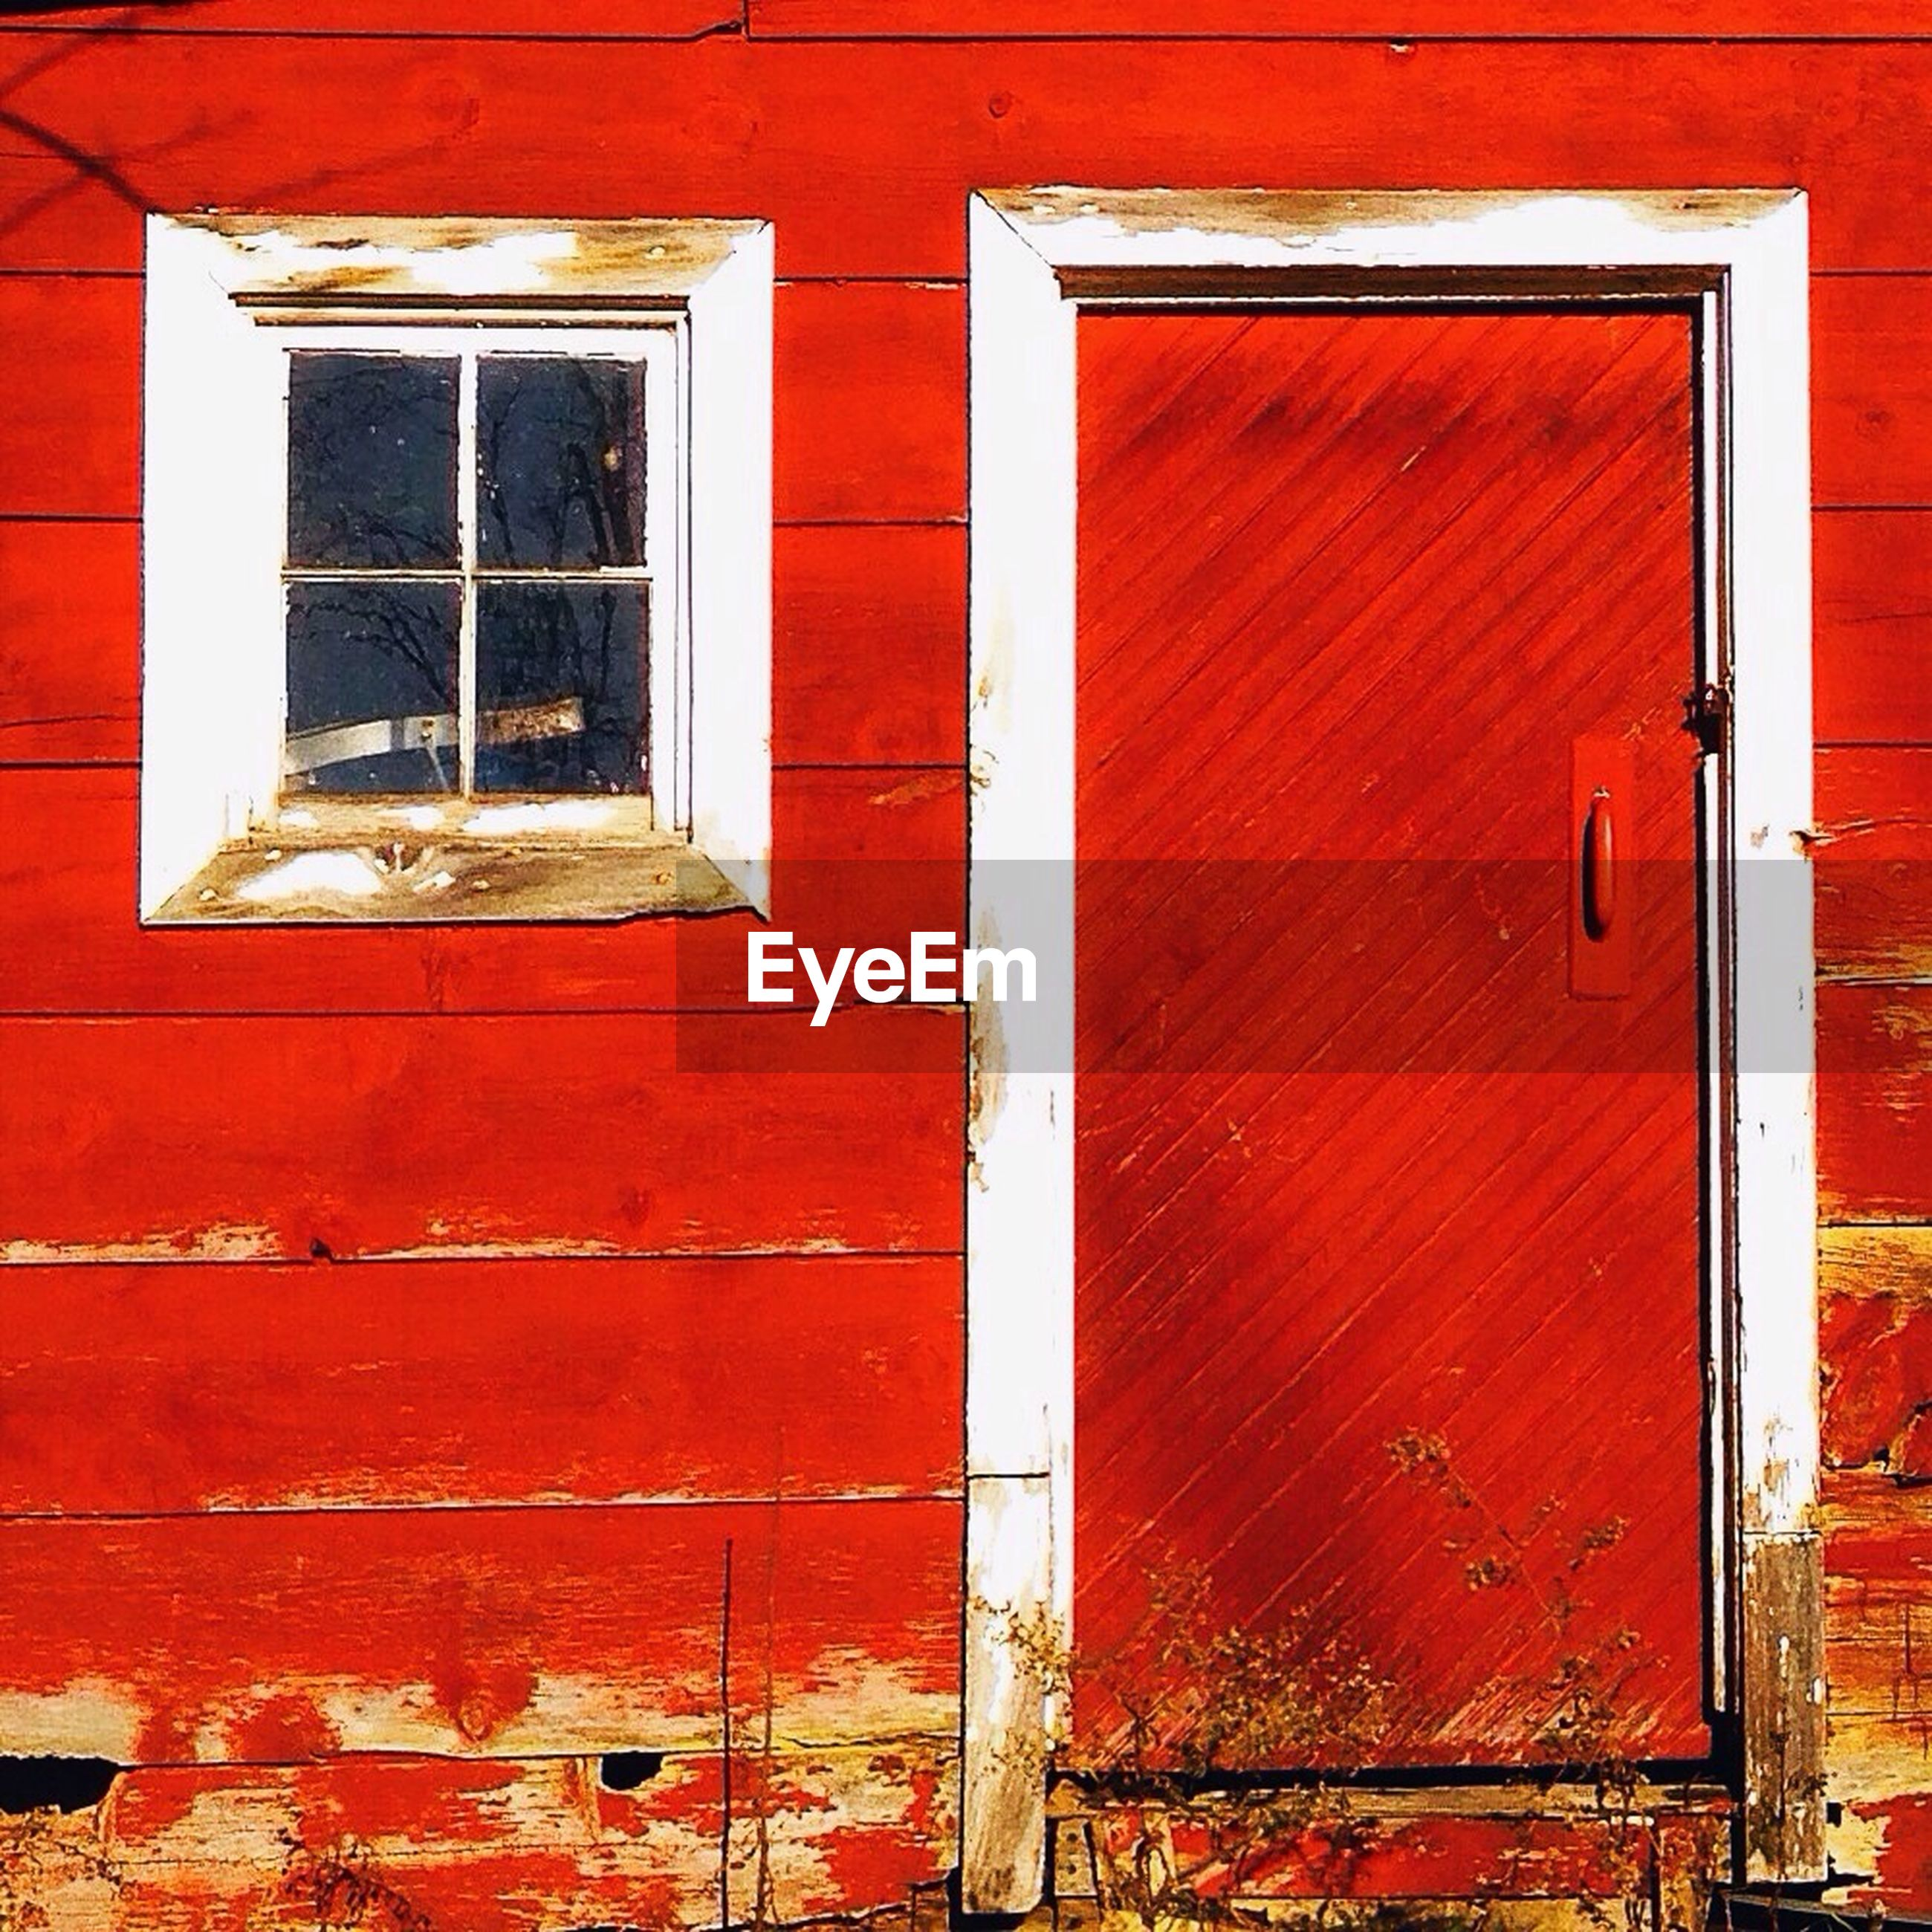 Exterior of old wooden red house